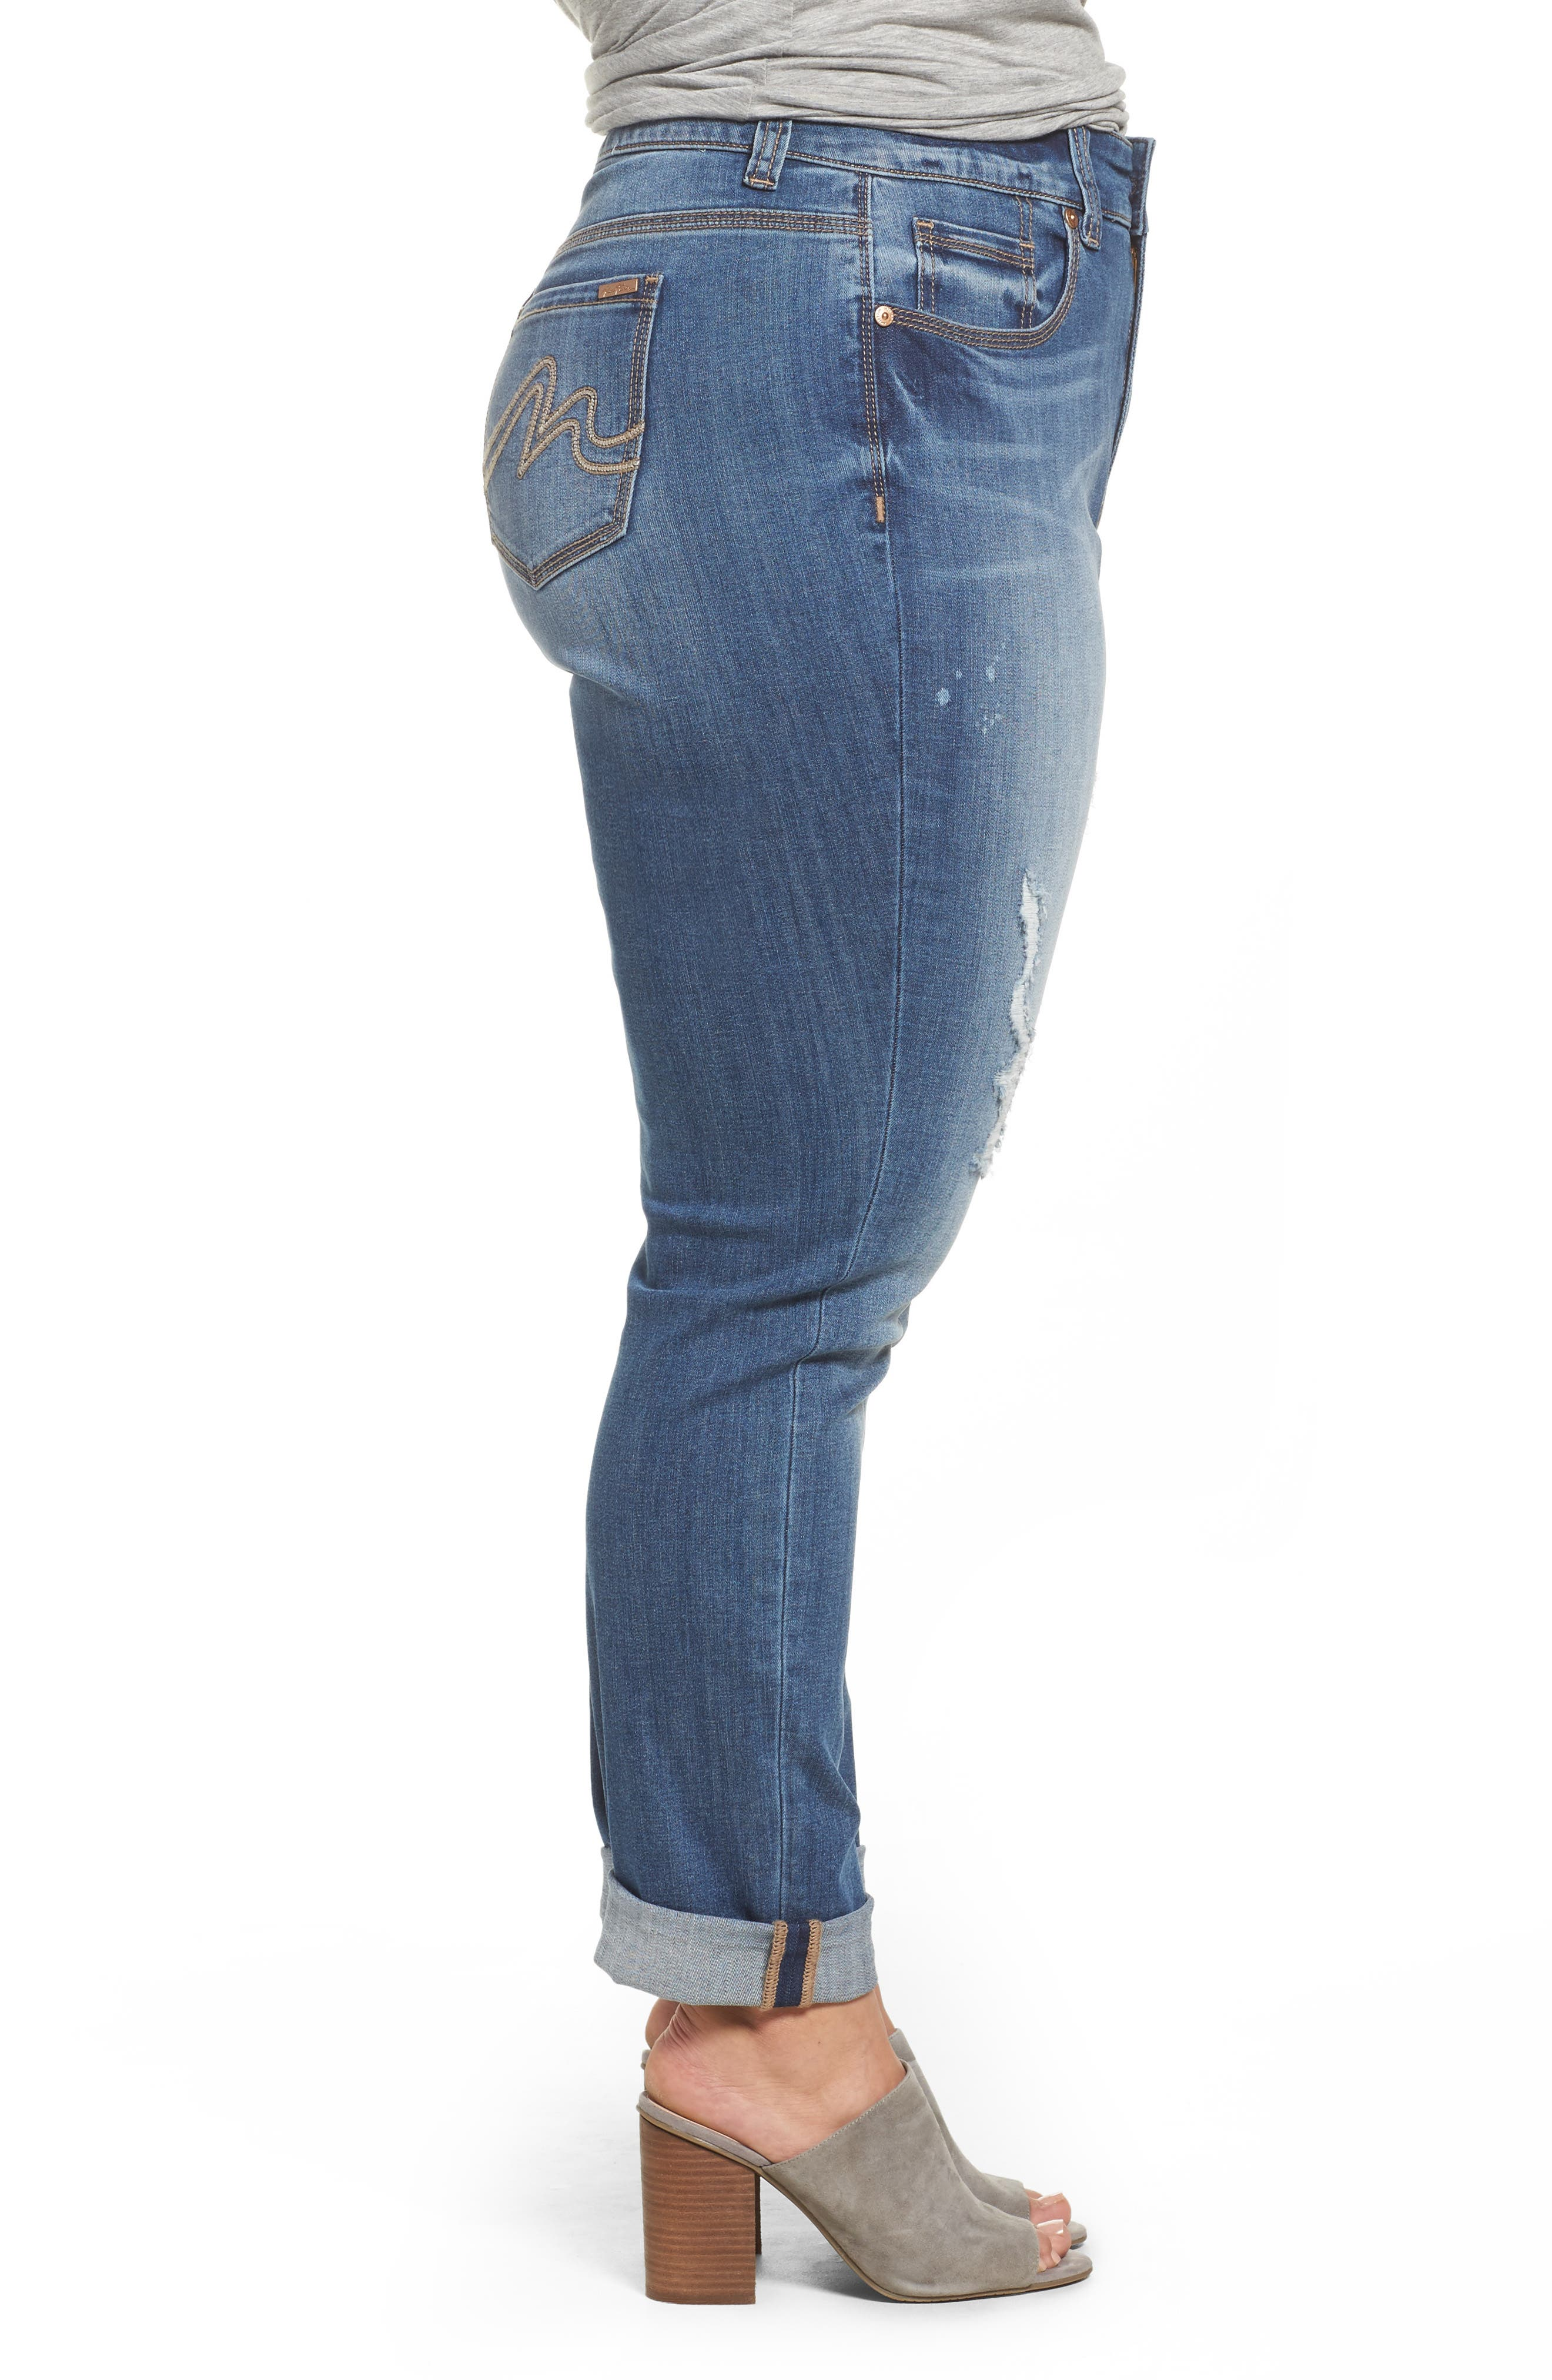 Cuffed Girlfriend Jeans,                             Alternate thumbnail 3, color,                             453